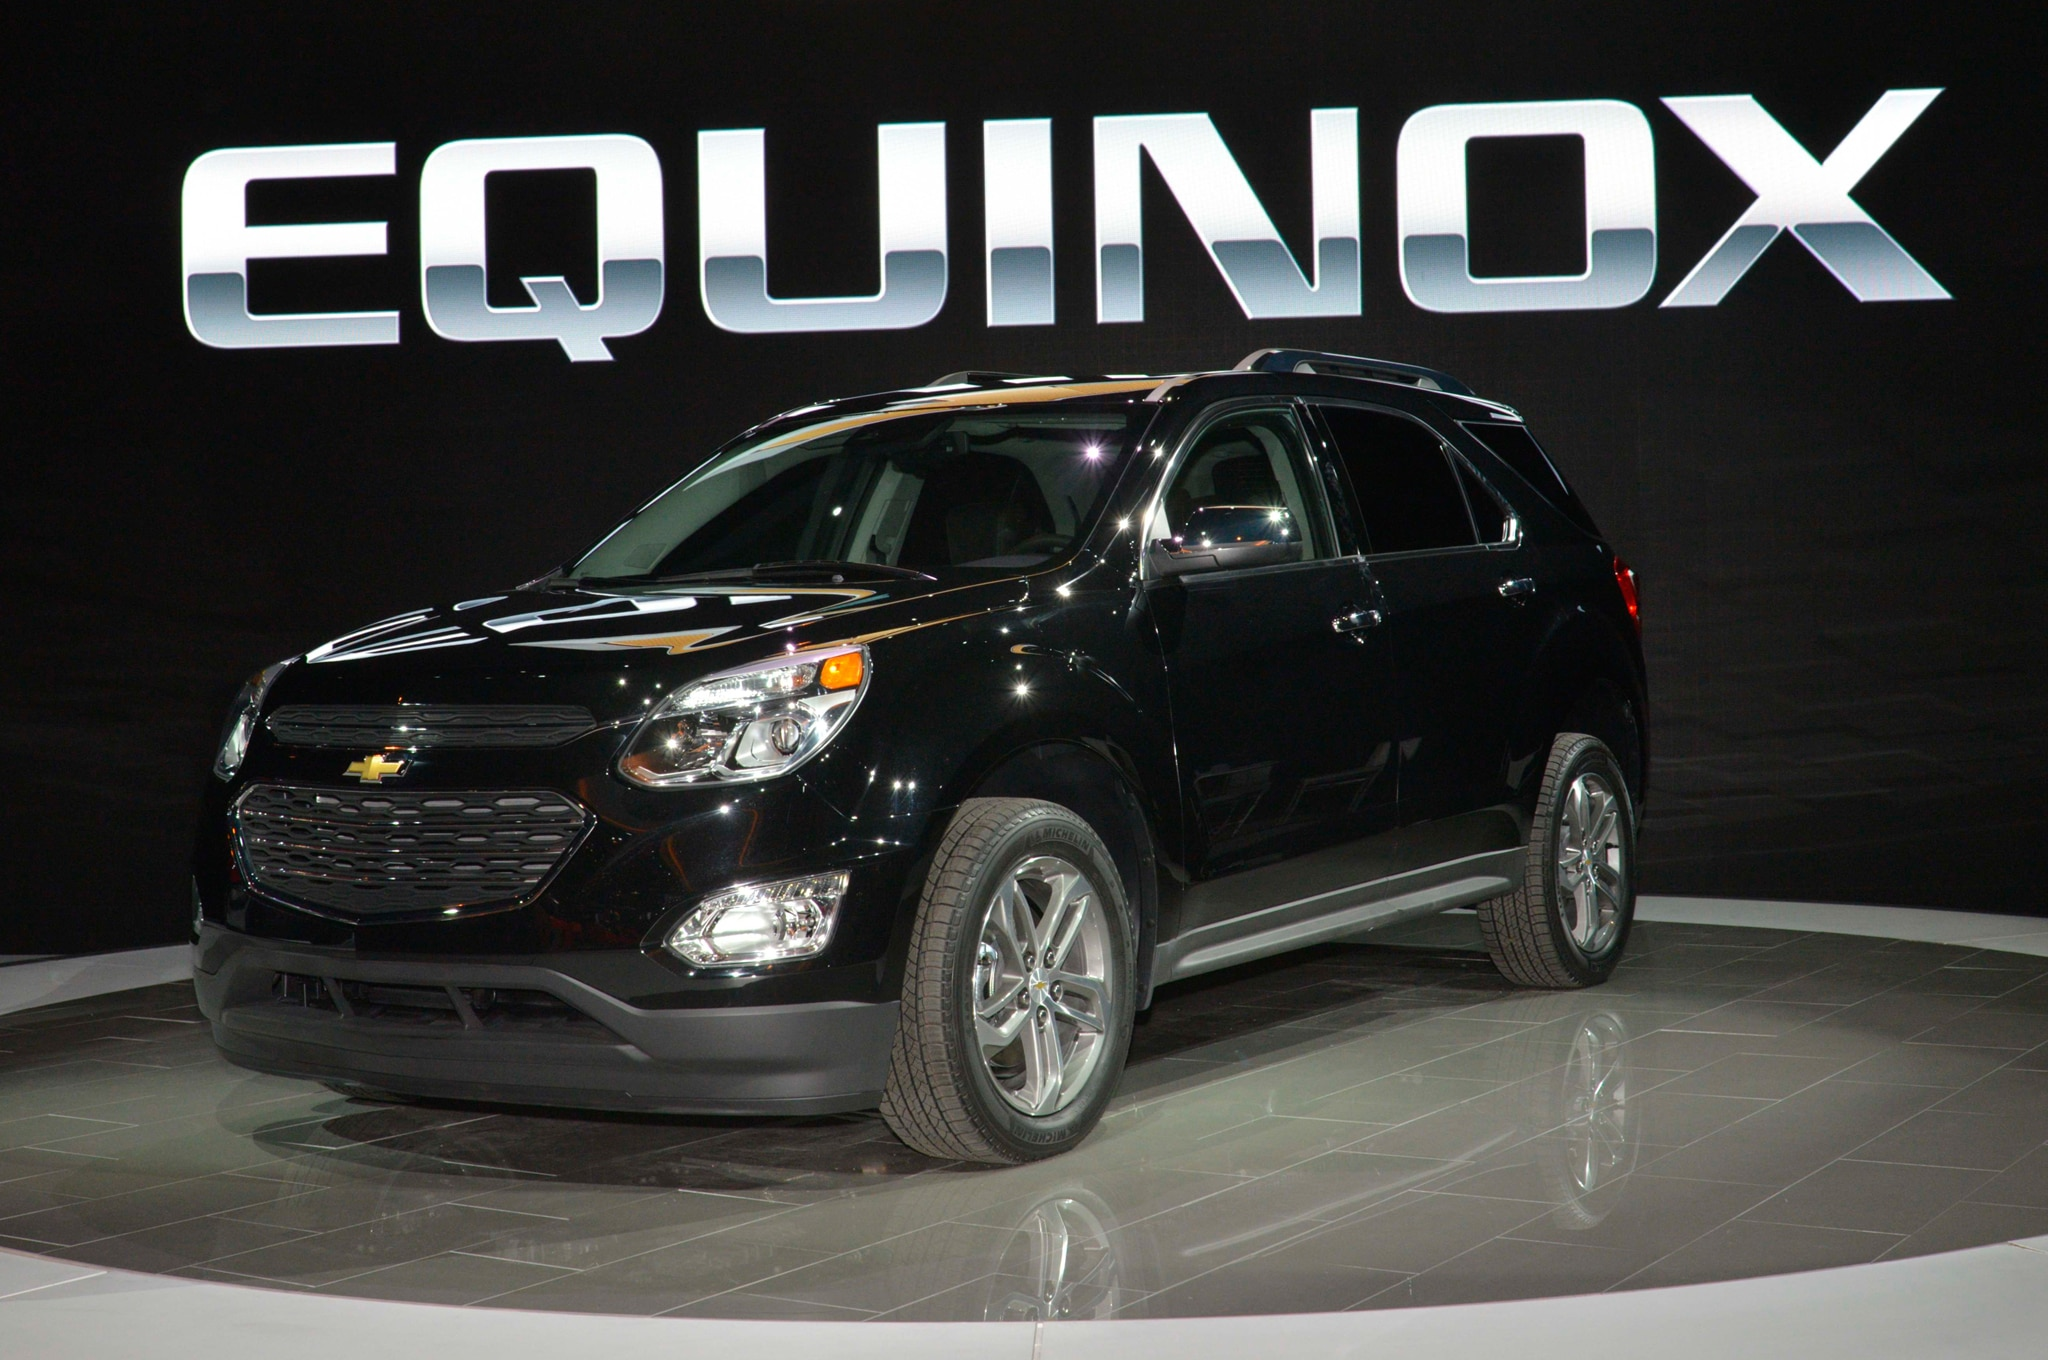 Refreshed 2016 Chevrolet Equinox Debuts In Chicago